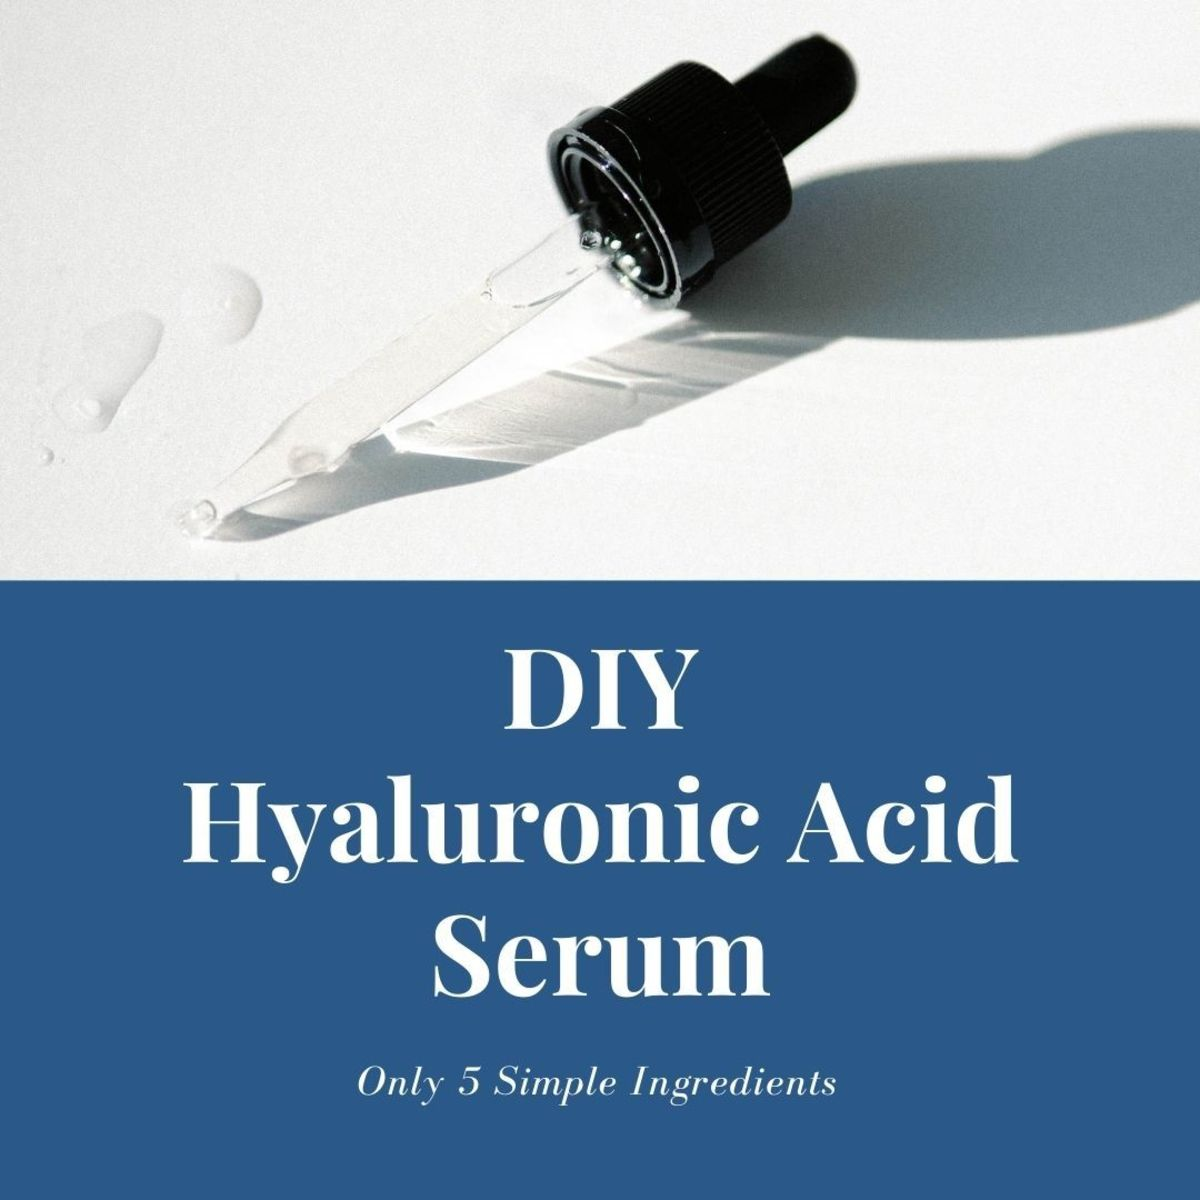 This hyaluronic acid serum will leave your skin hydrated and glowing.